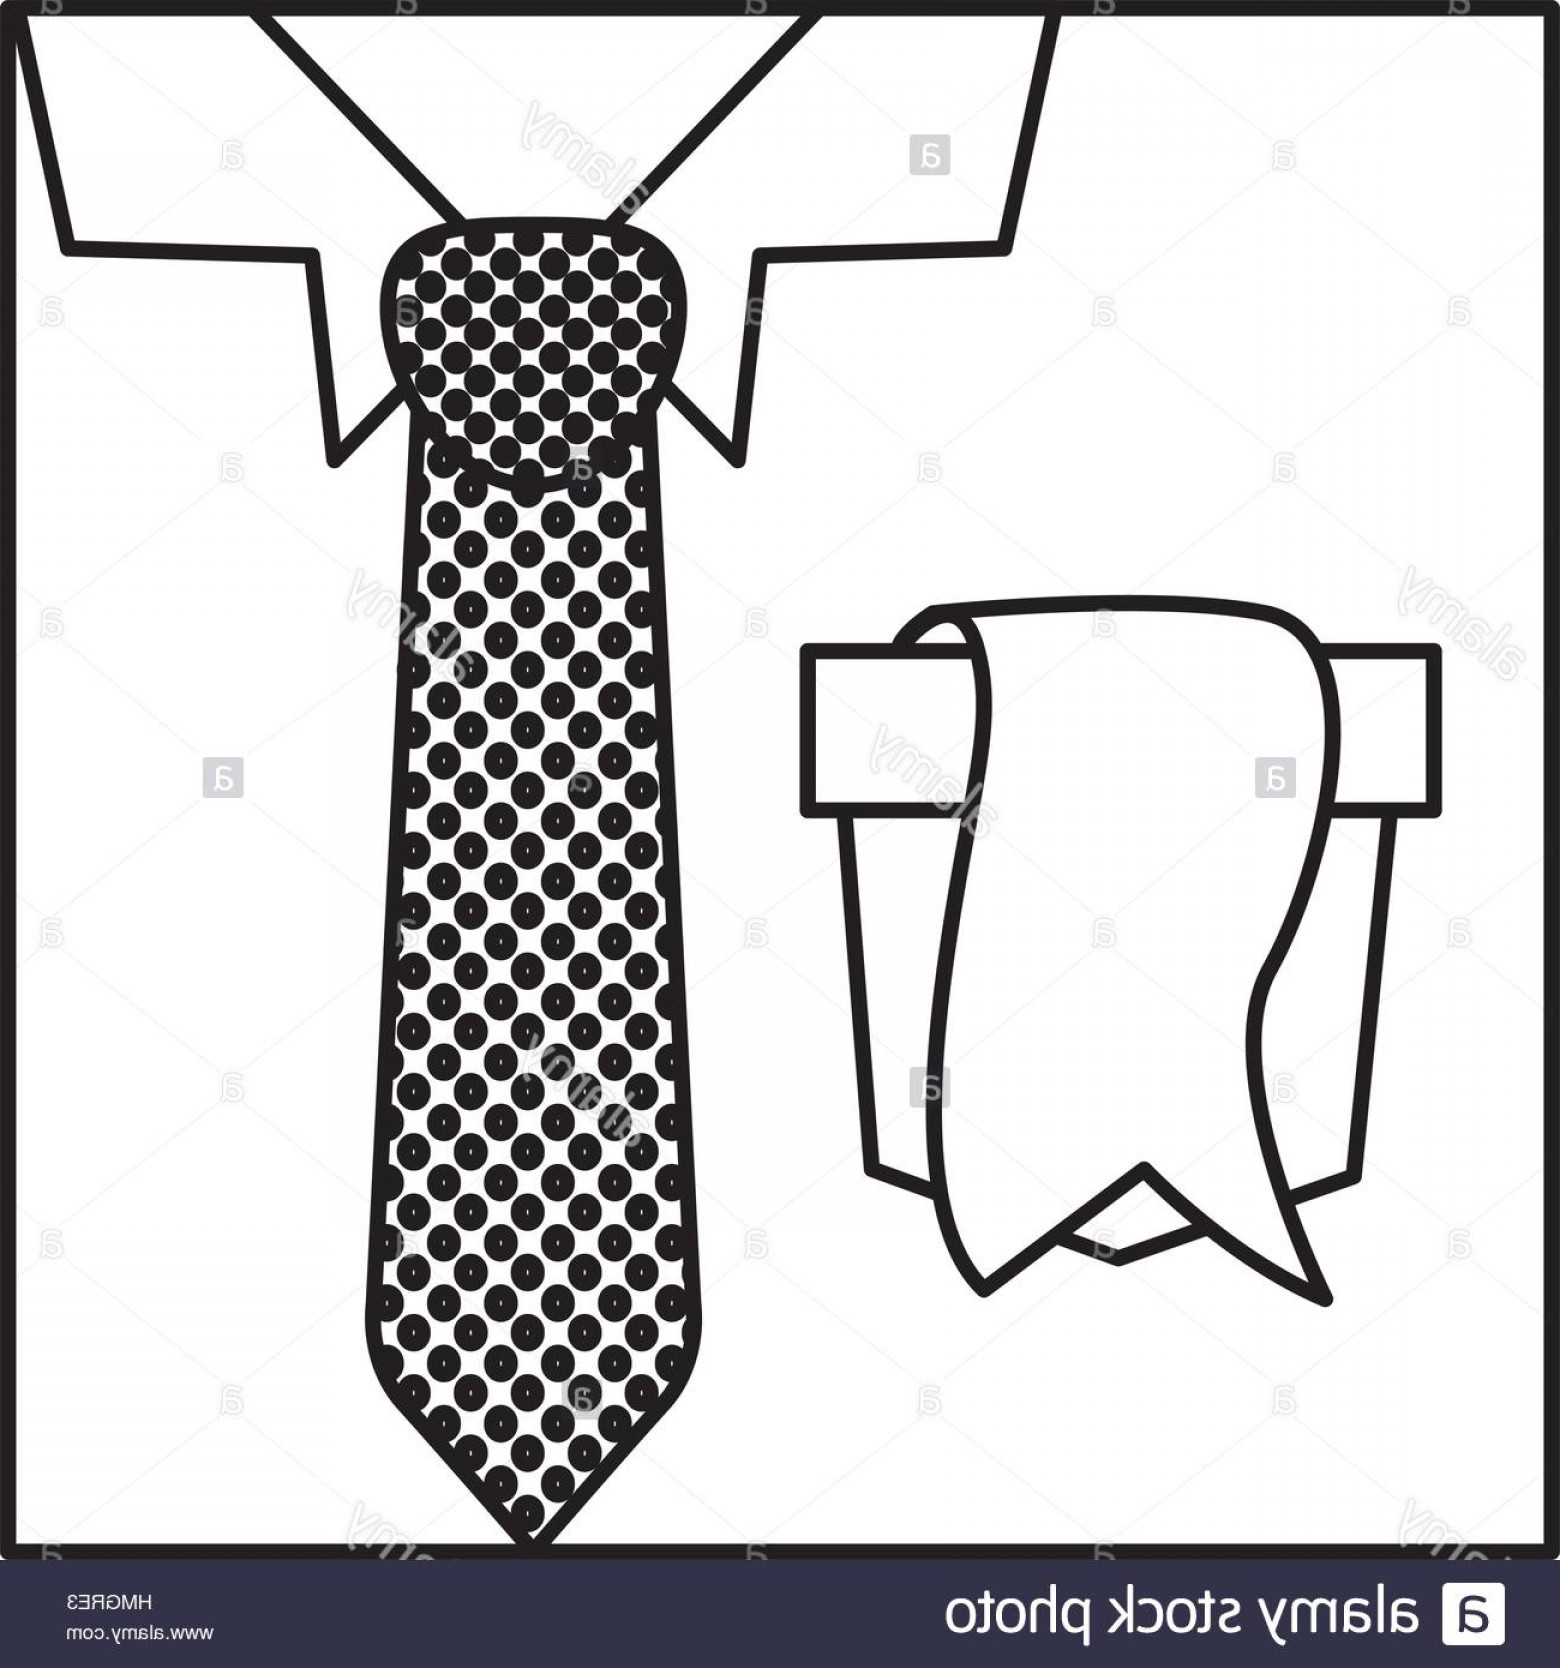 Vector Pocket Silhouette Shirt: Stock Photo Square Border Silhouette With Close Up Formal Shirt With Dotted Necktie